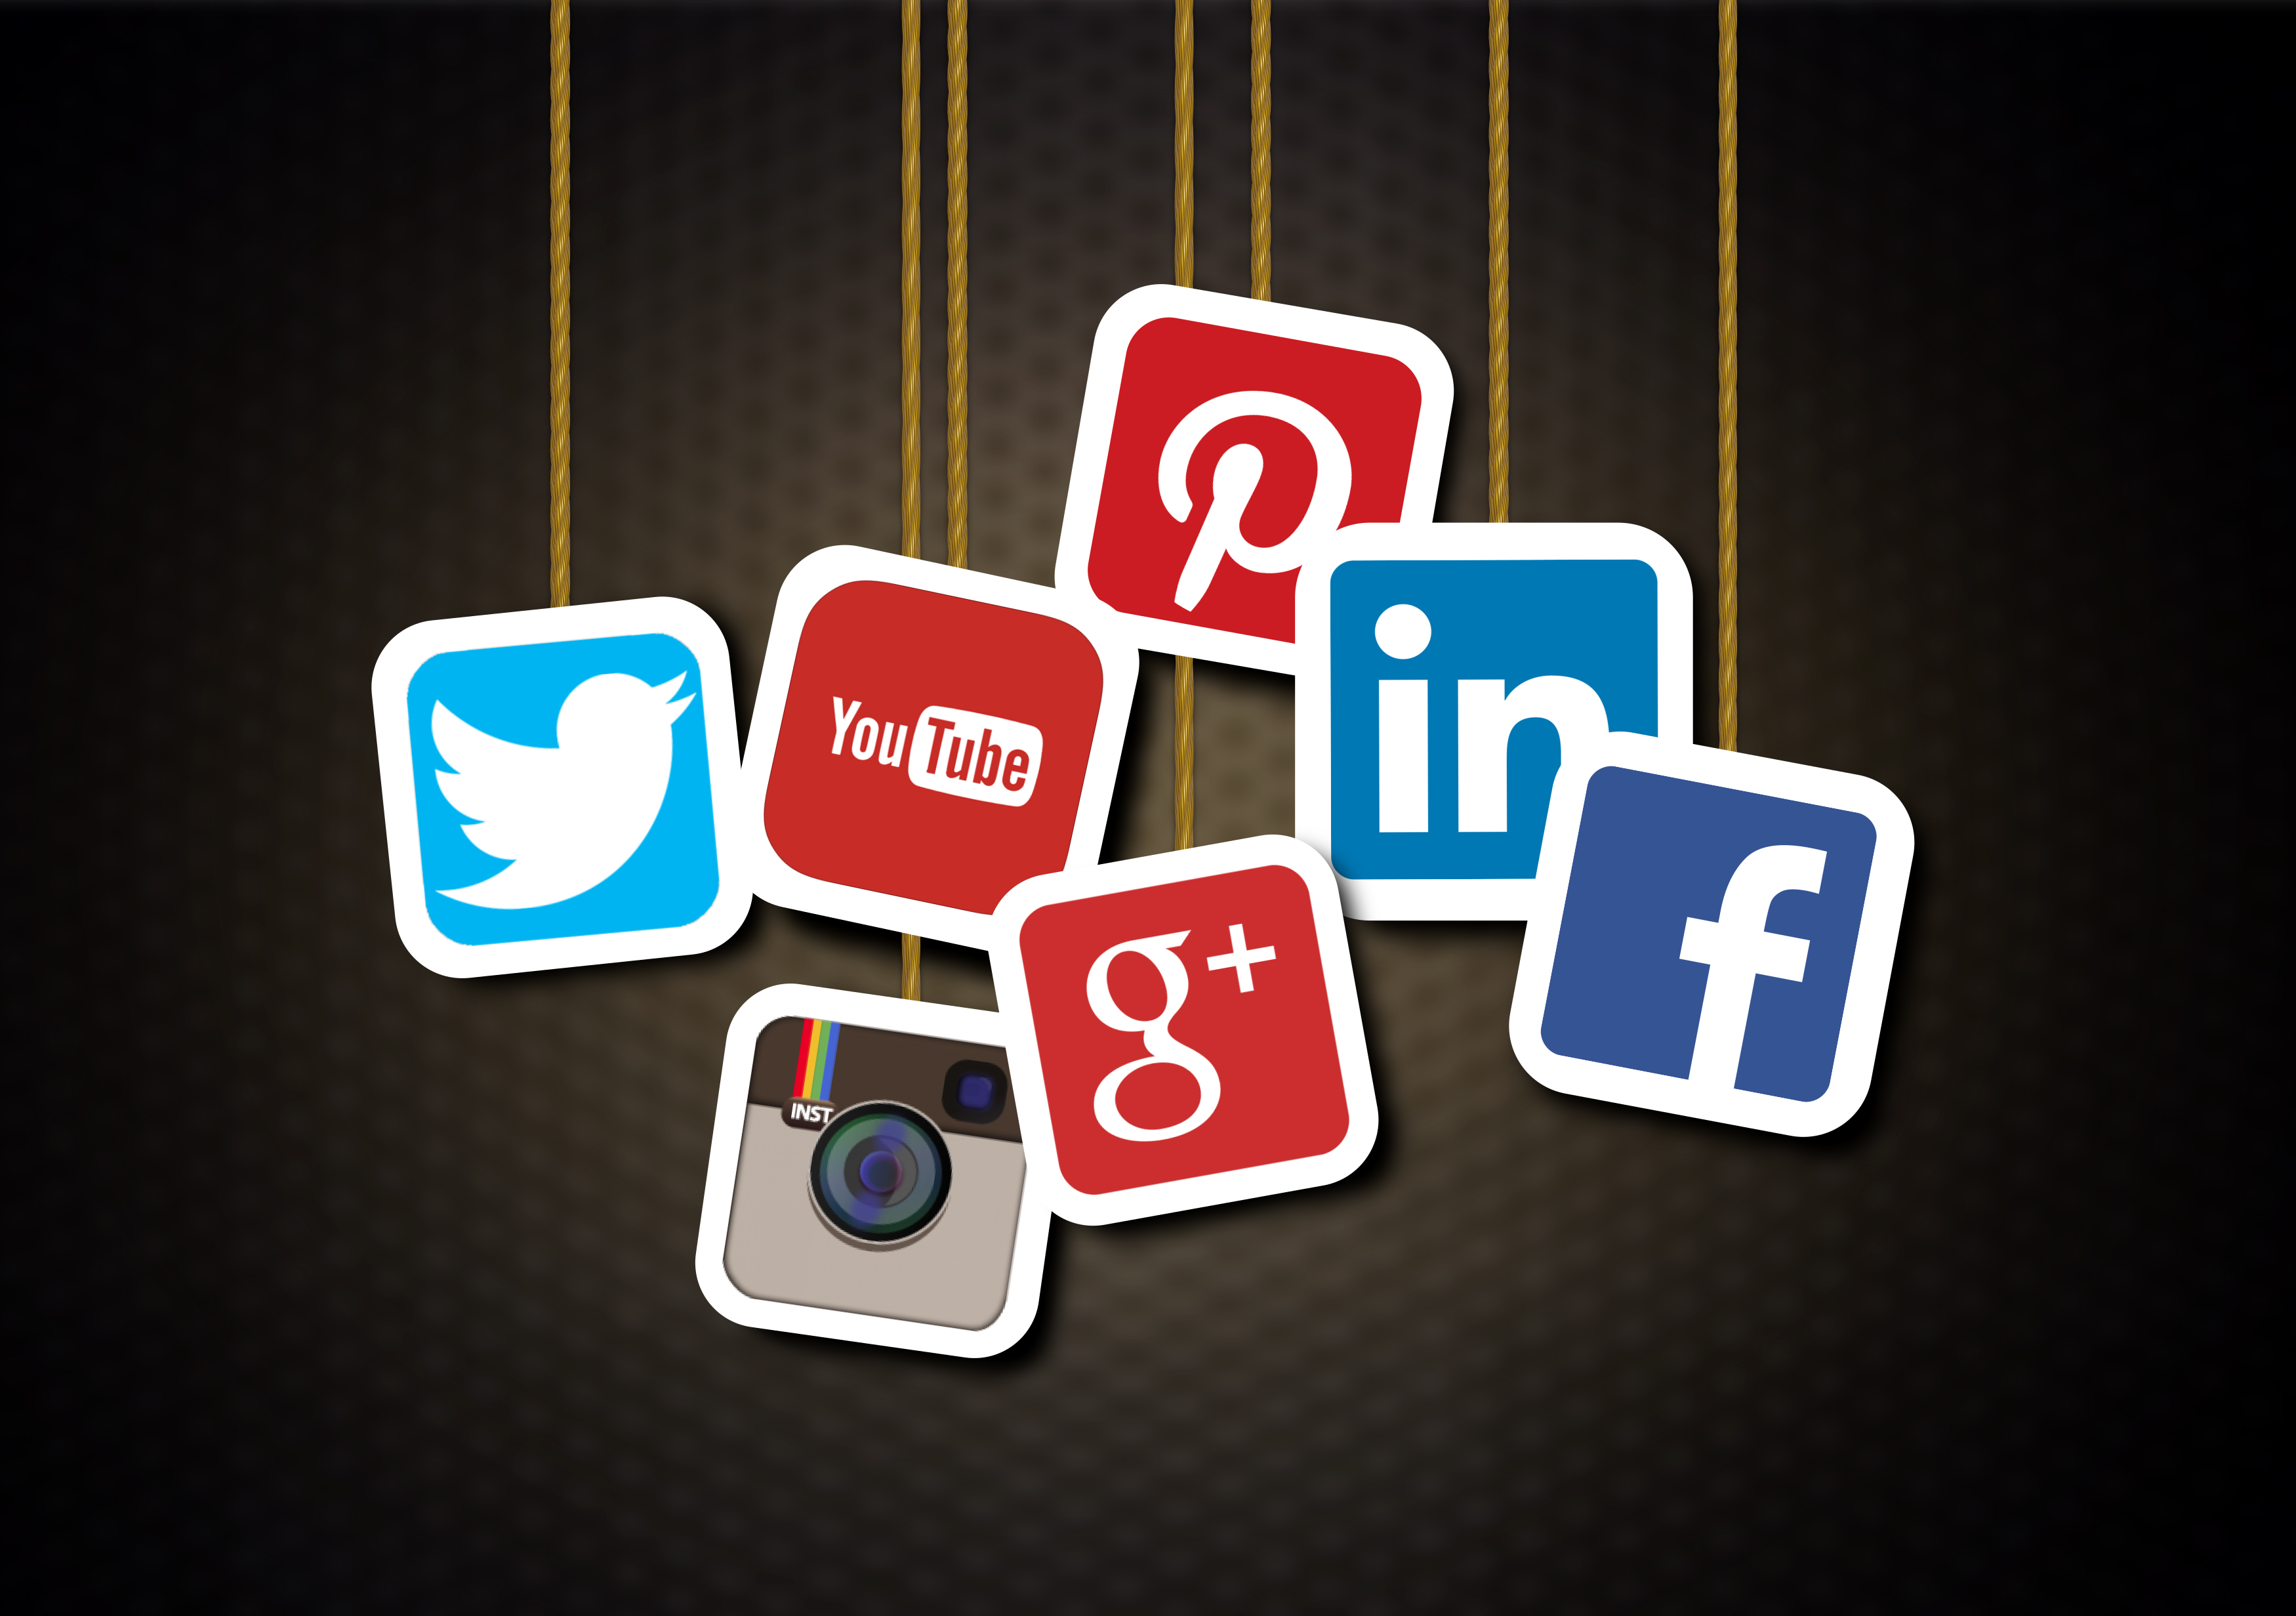 Main social media brands - Illustration, Abstract, Number, Rotate, Presentation, HQ Photo